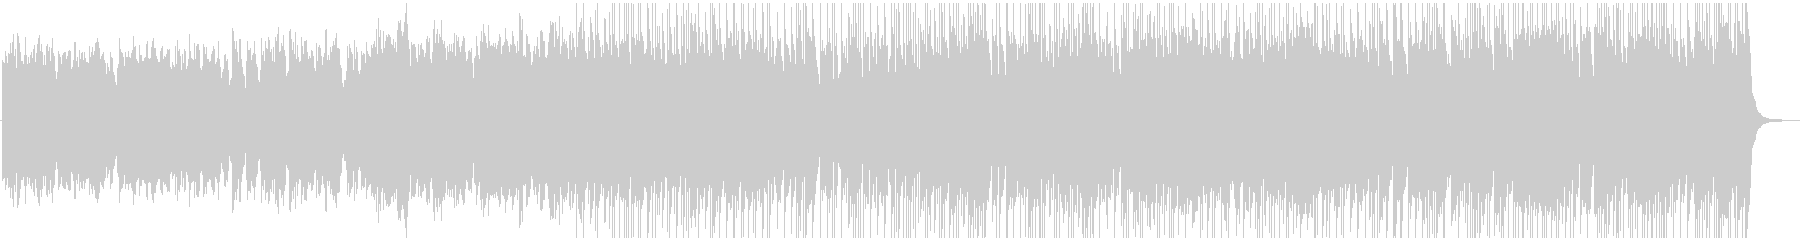 Fairy tale and elegant BGM's unreproduced waveform